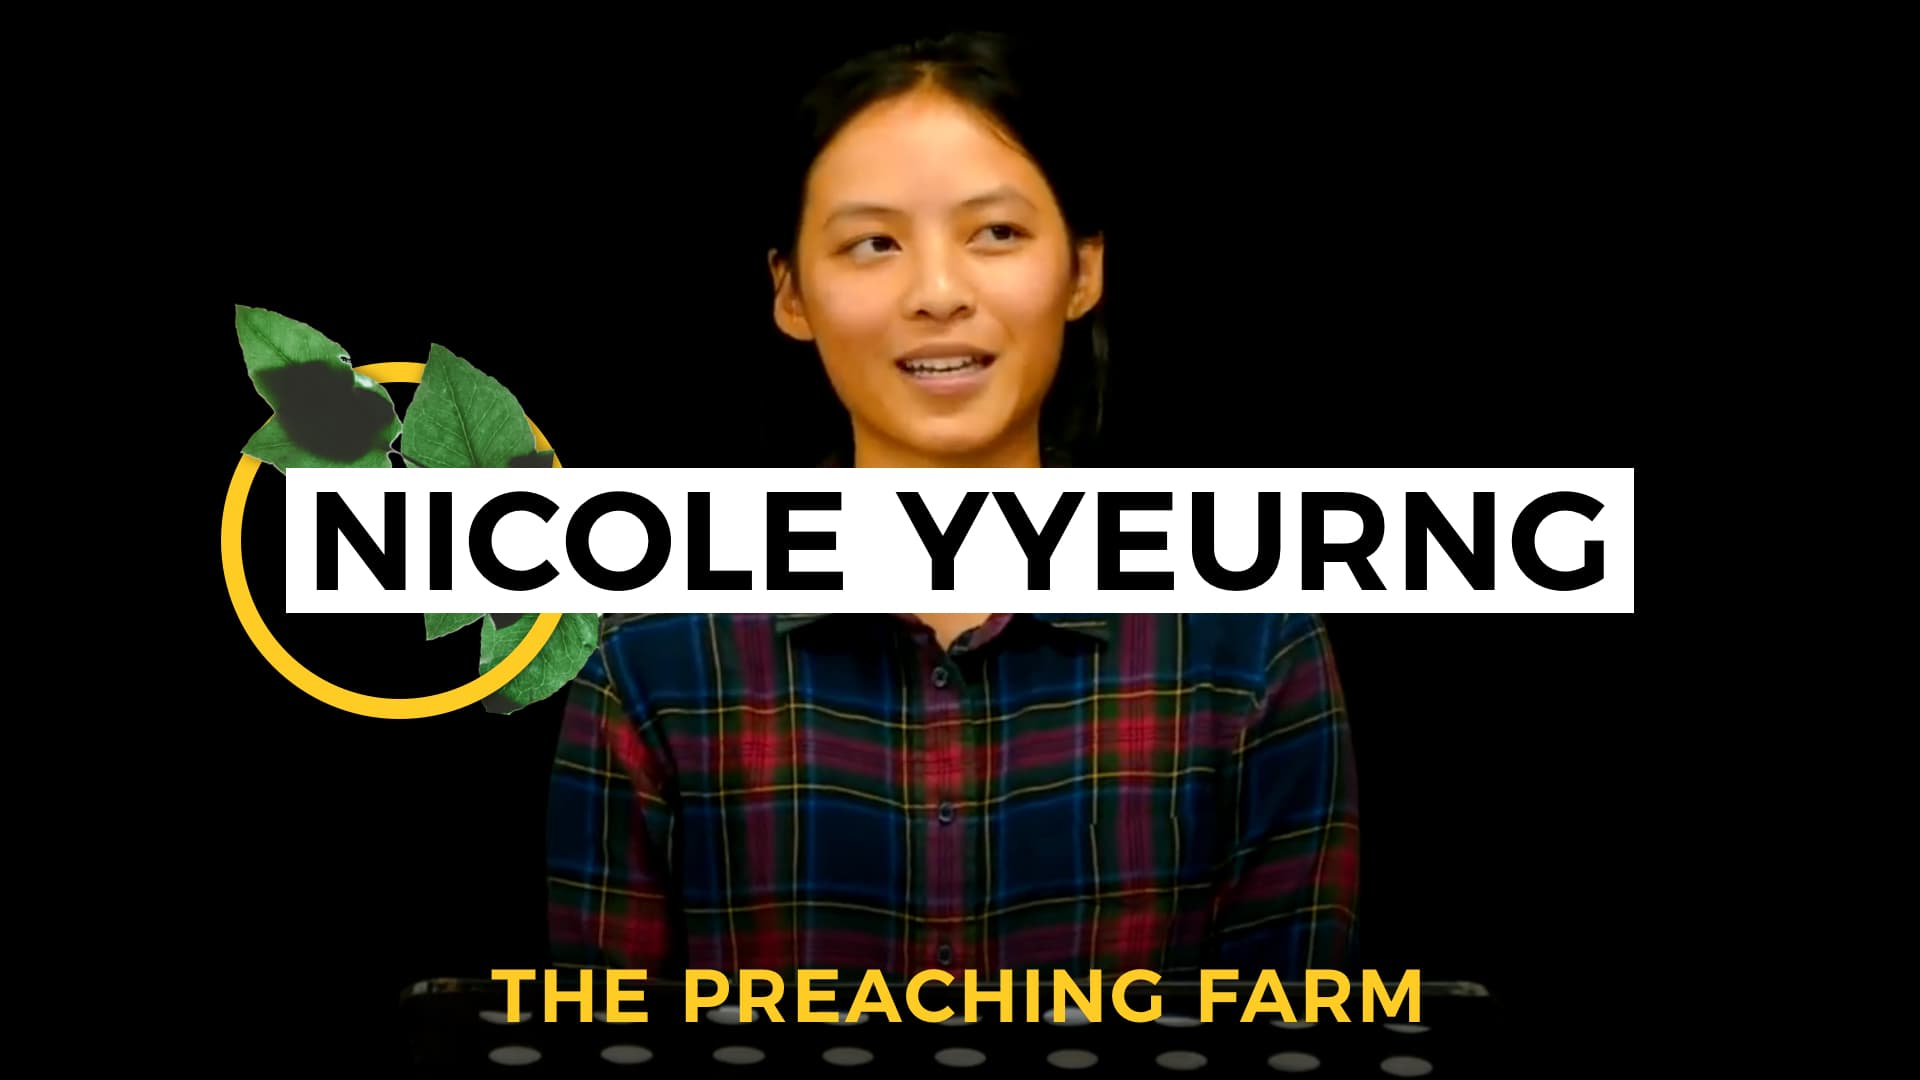 The Preaching Farm 1: Nicole Yyeurng